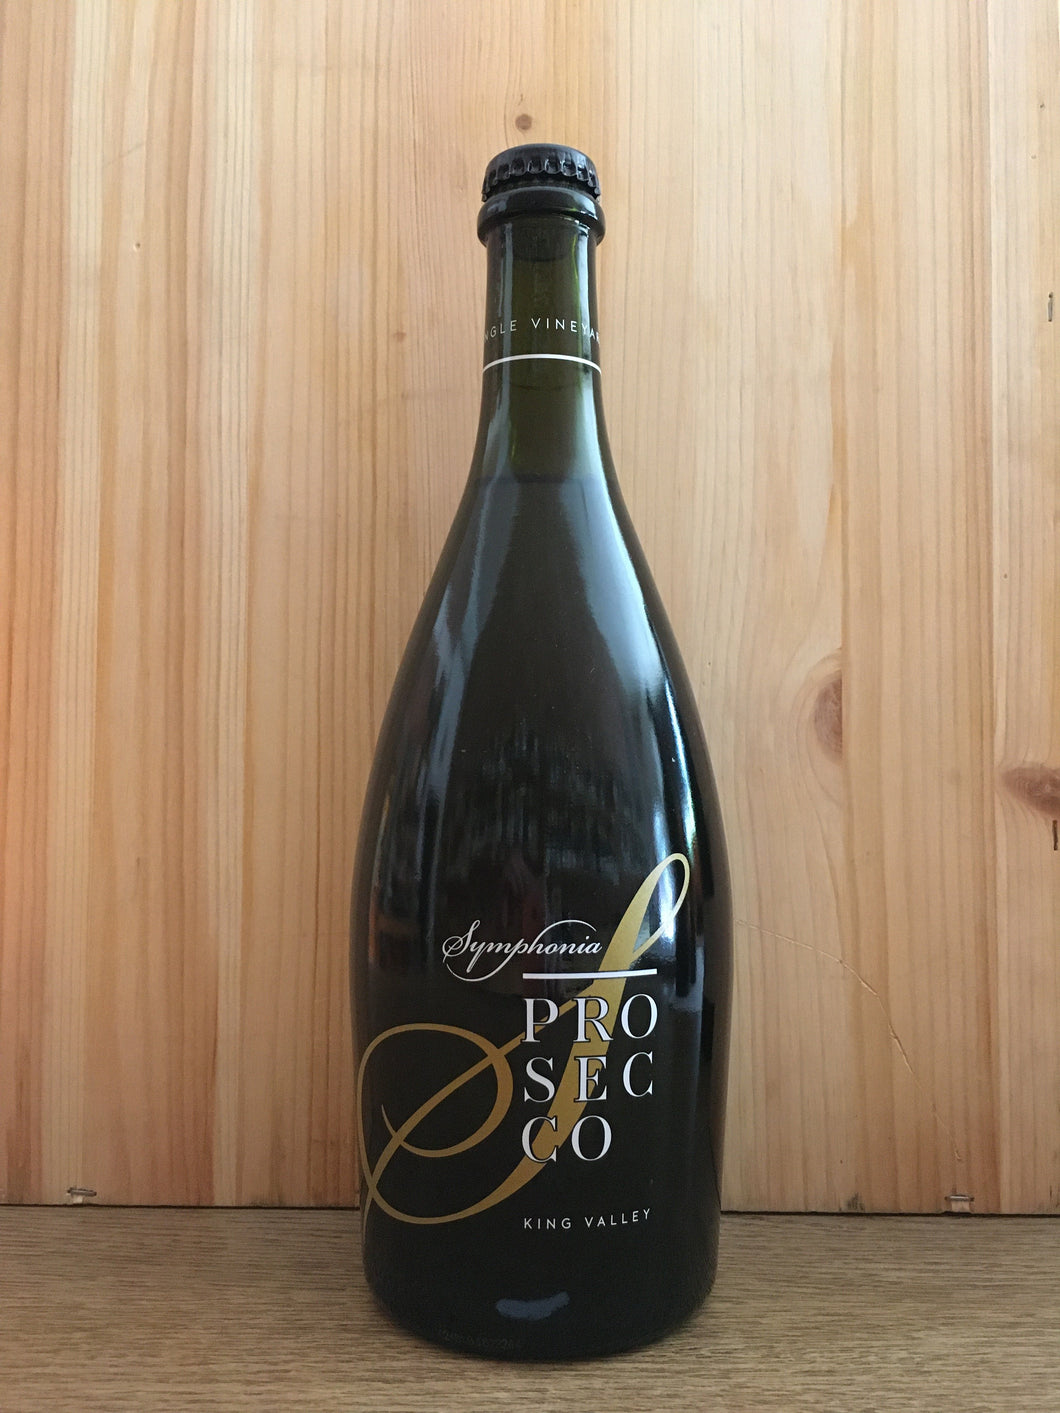 Symphonia Prosecco King Valley 2016